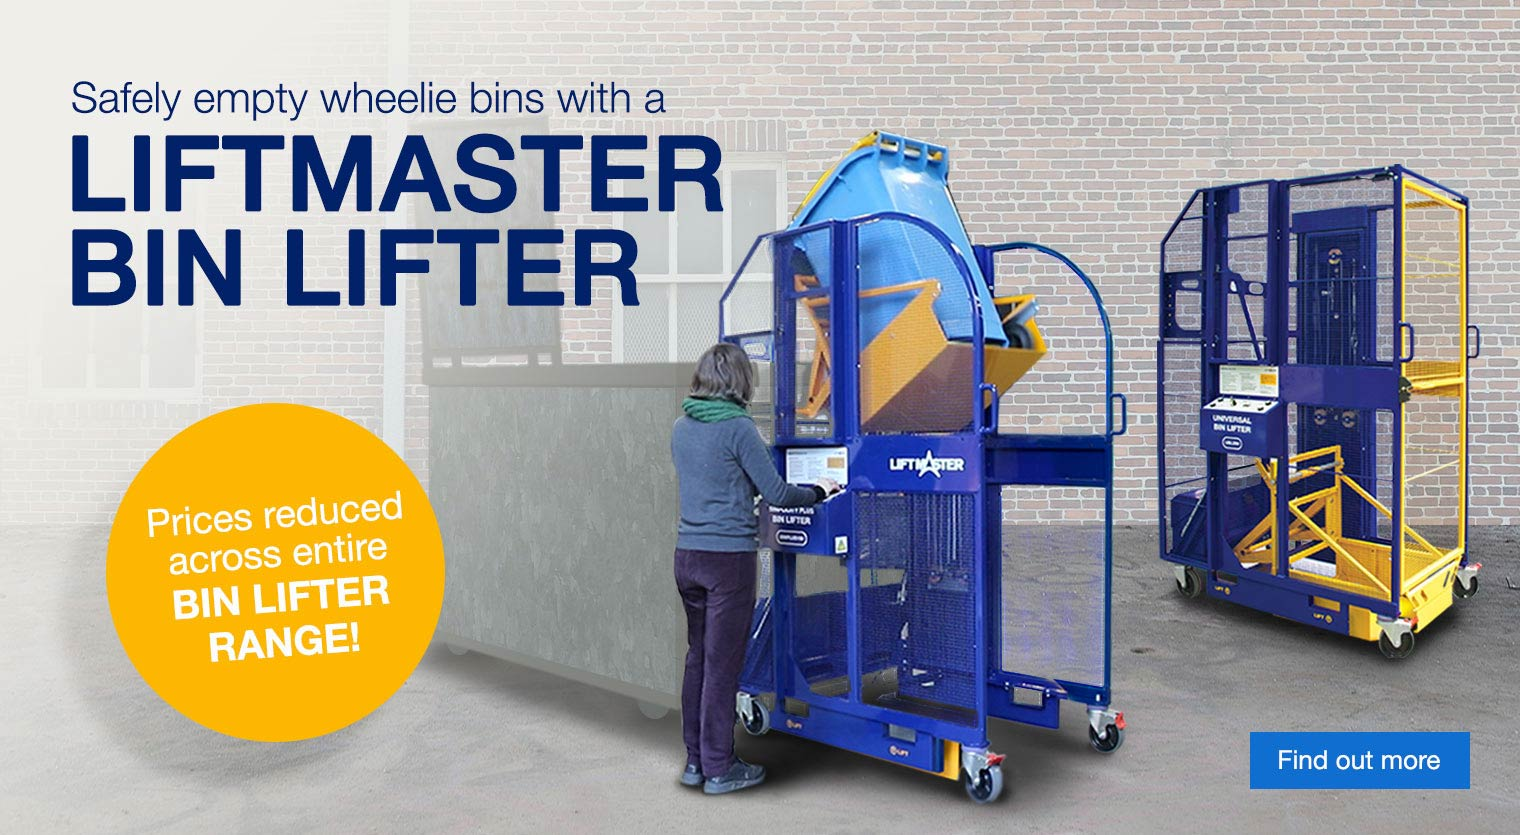 The benefits of using a bin lifter